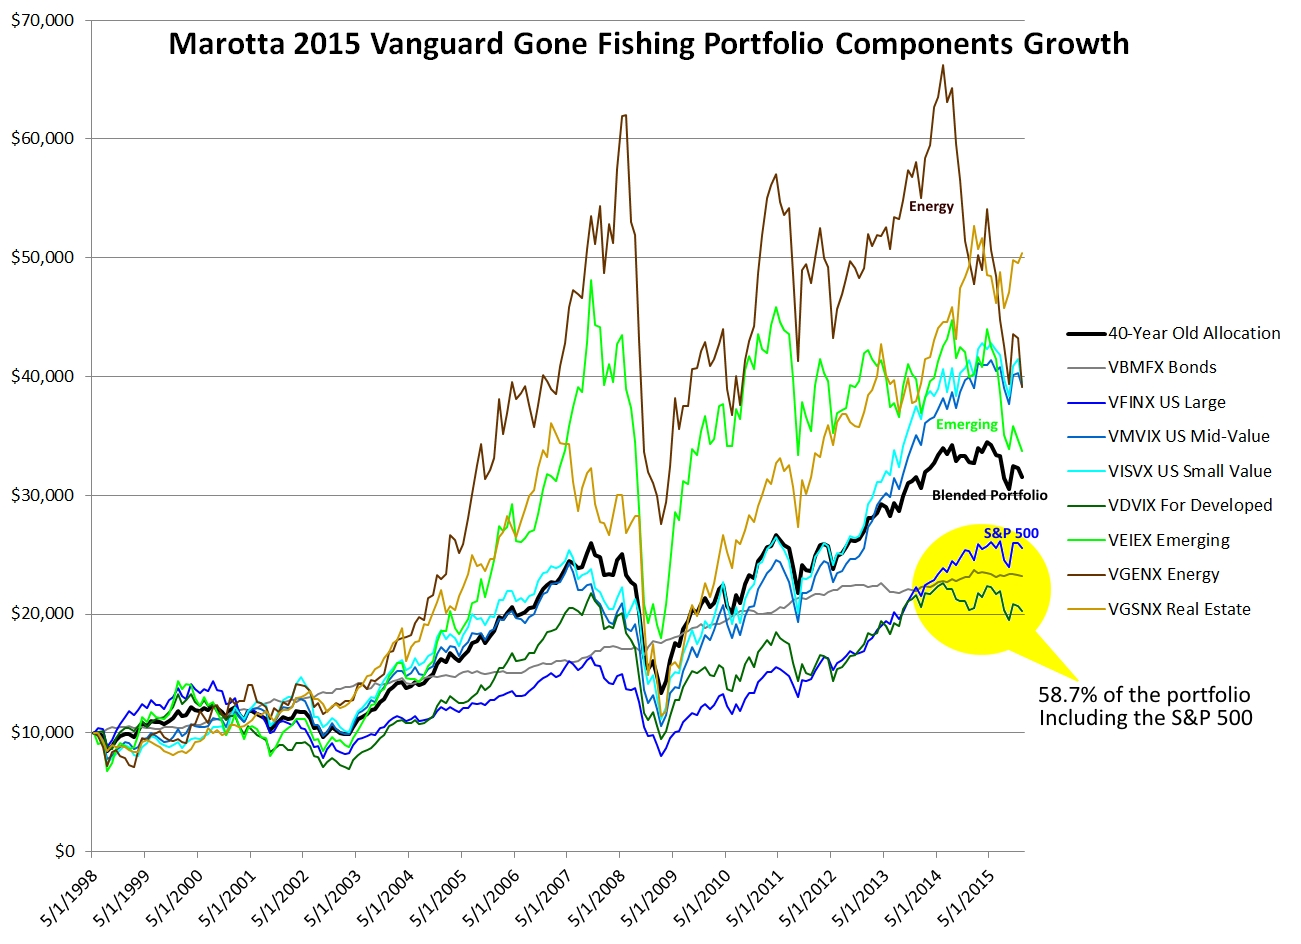 Vanguard Gone Fishing 2015 Growth